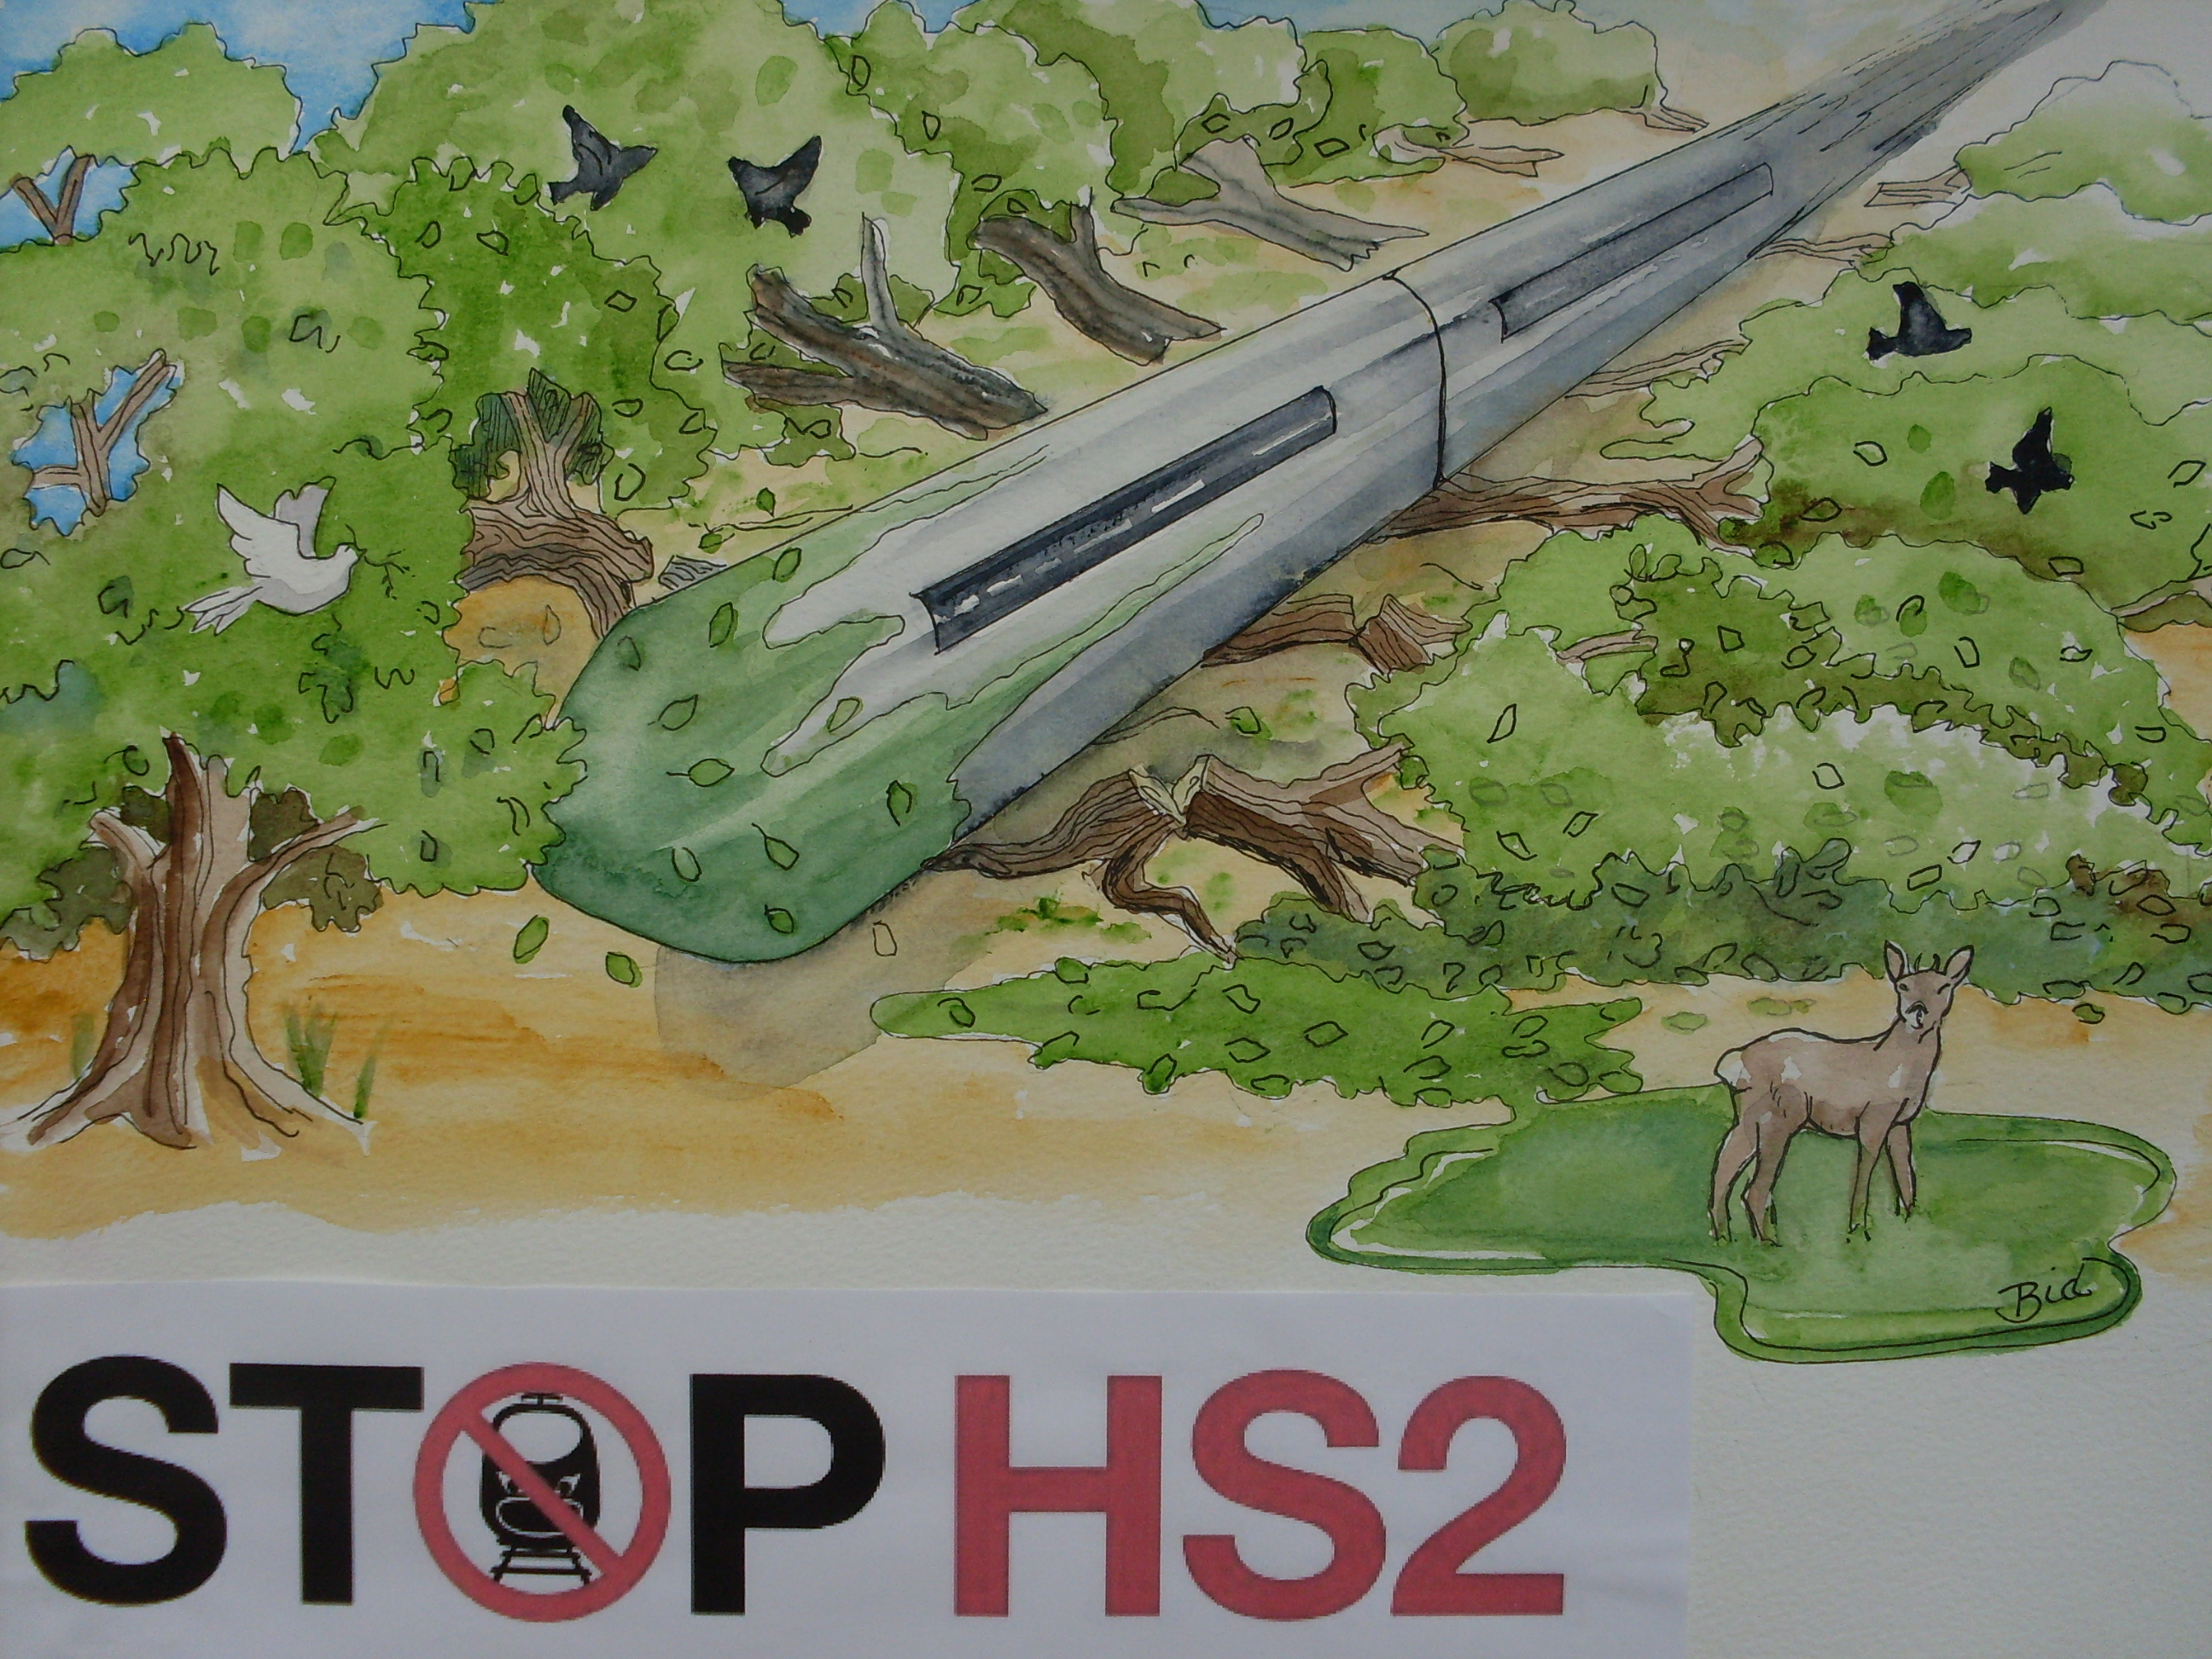 Artists impression of how HS2 trains could be used to move trees.